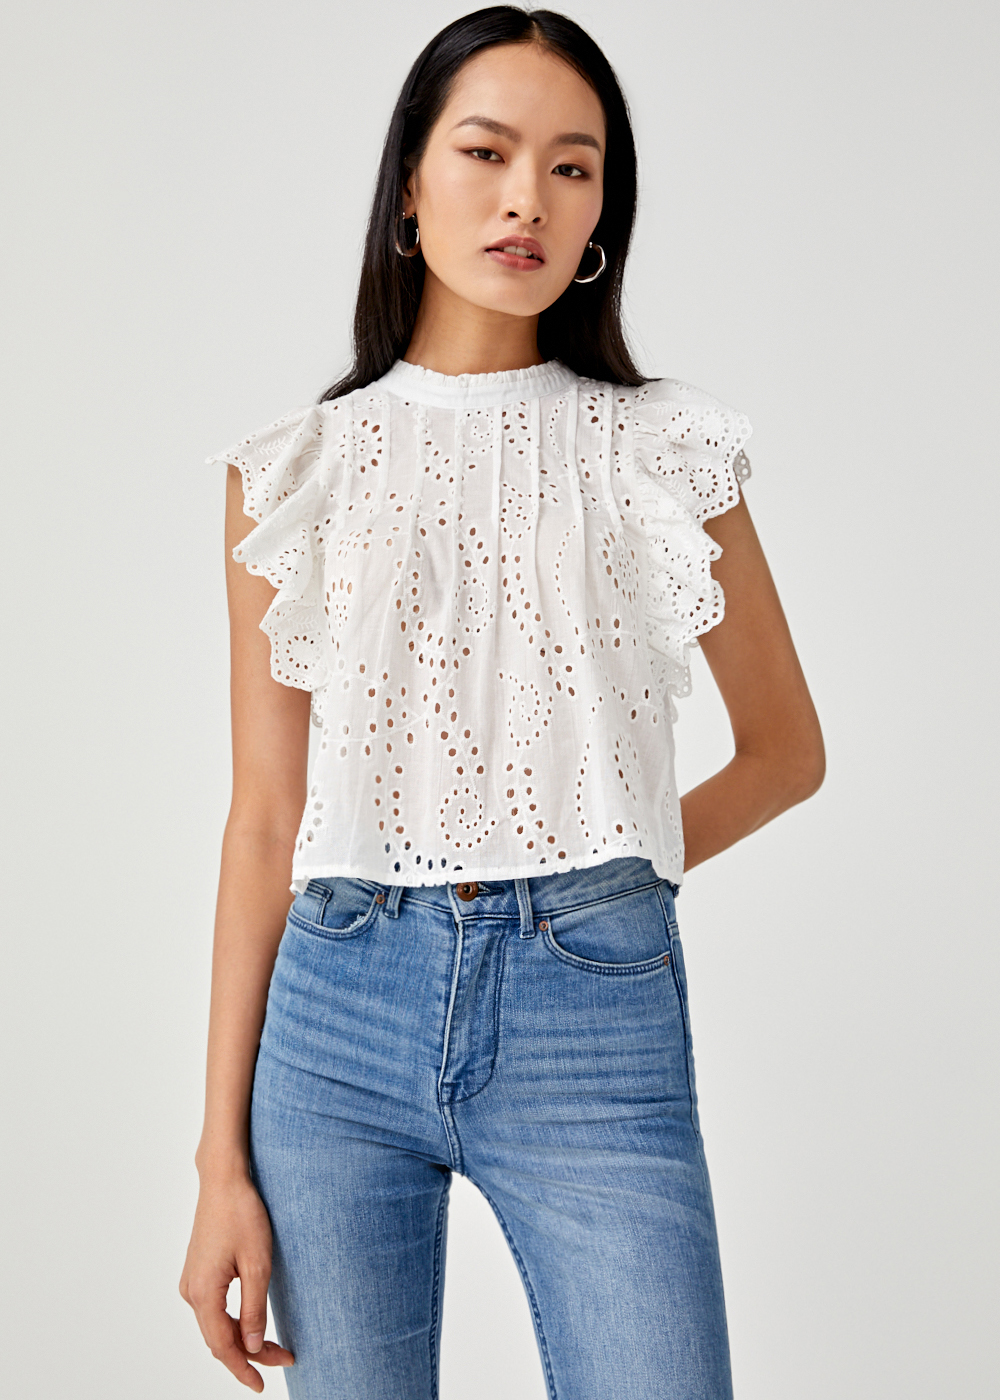 Akira Broderie Anglaise Shell Top